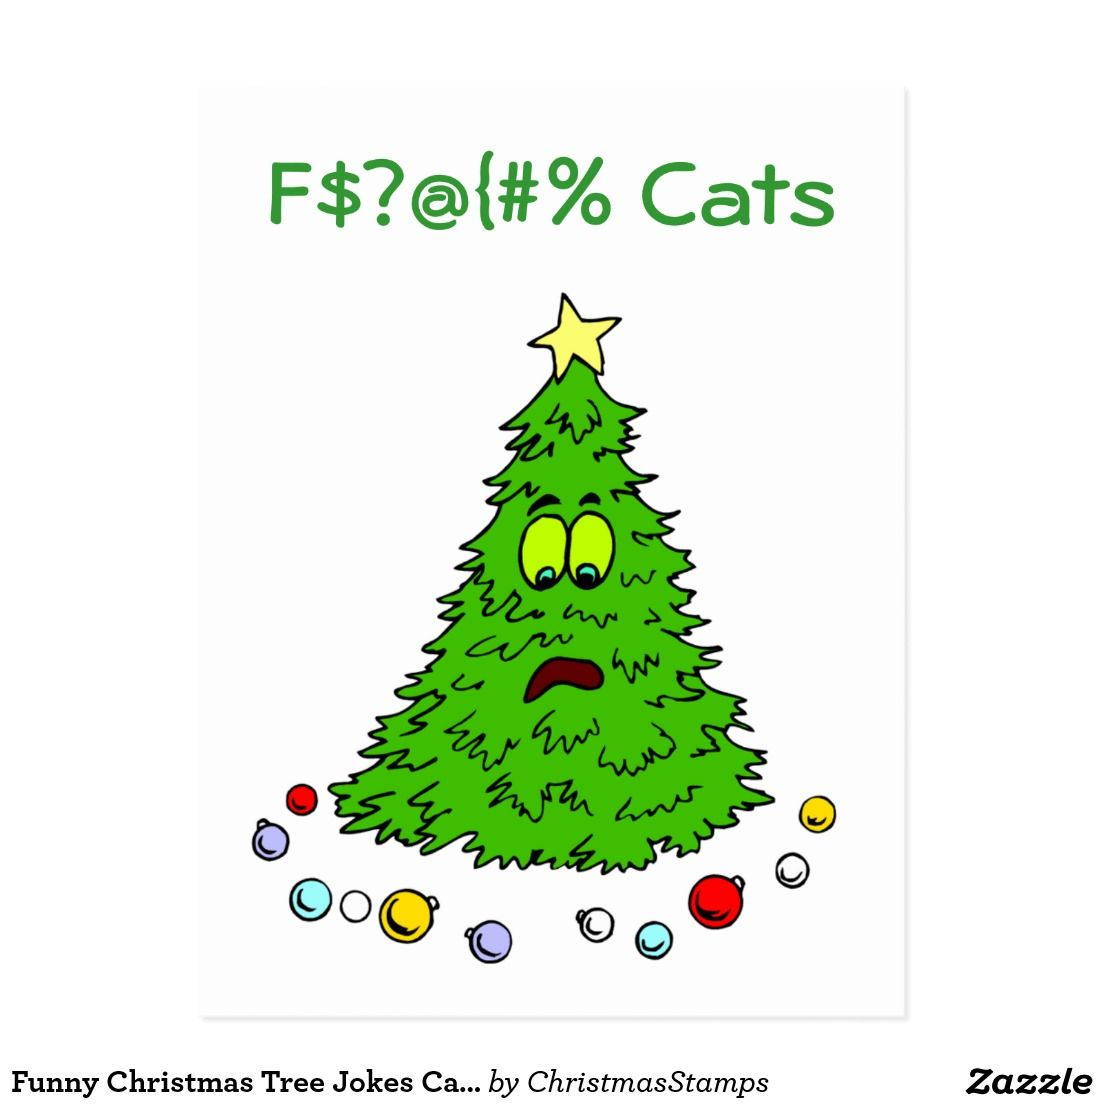 Funny Christmas Tree Jokes Cats Holiday Xmas Zazzle Com Funny Christmas Tree Christmas Tree Jokes Christmas Humor